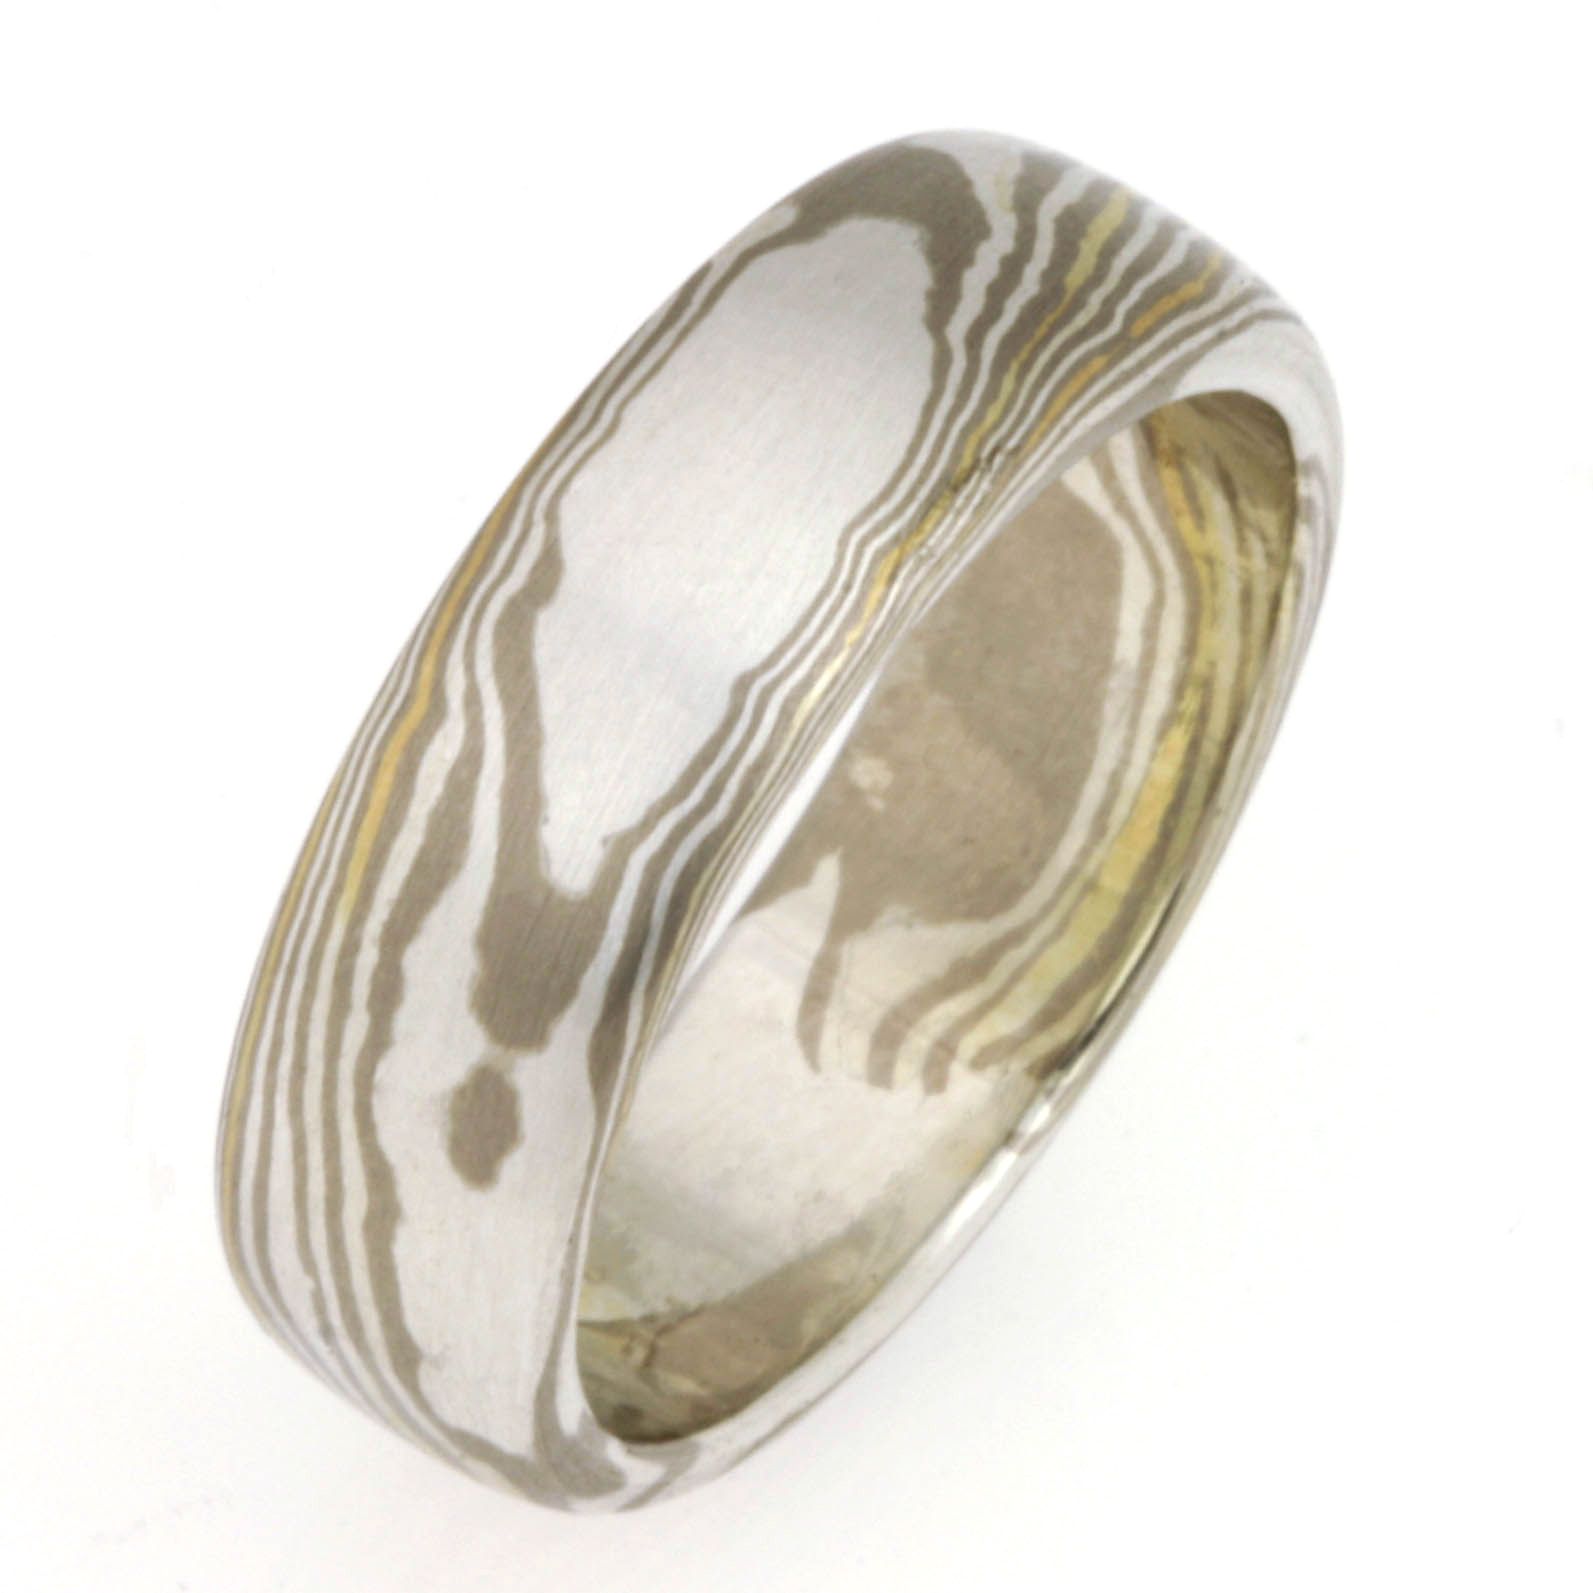 Handmade gents 18ct white gold, 18ct yellow gold and sterling silver Mokume Gane wedding ring